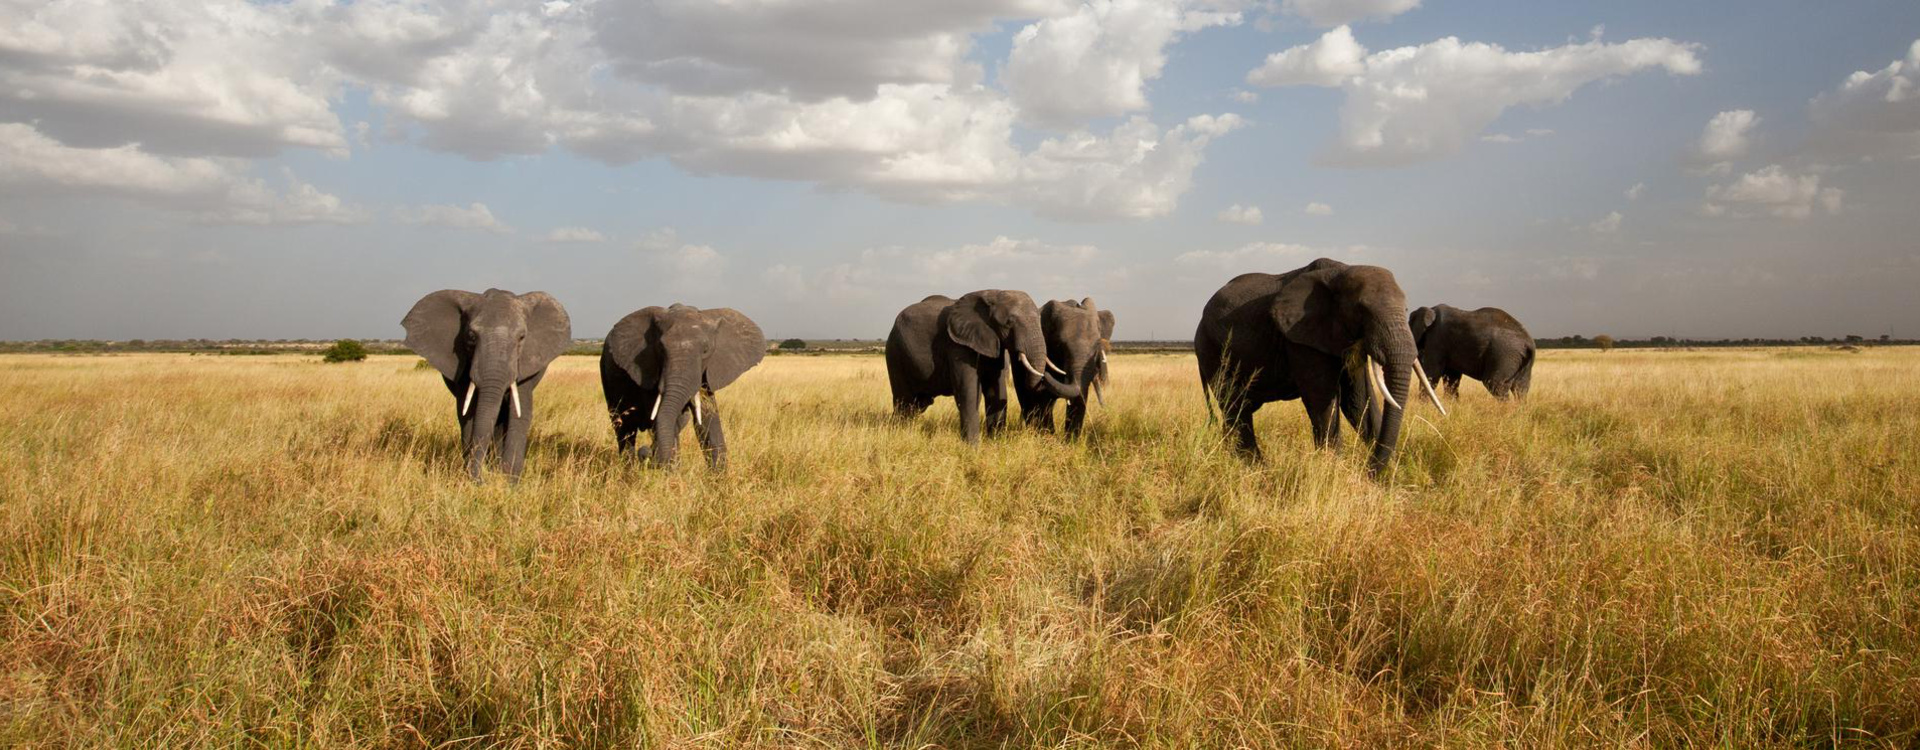 tanzanie-elephants-safari